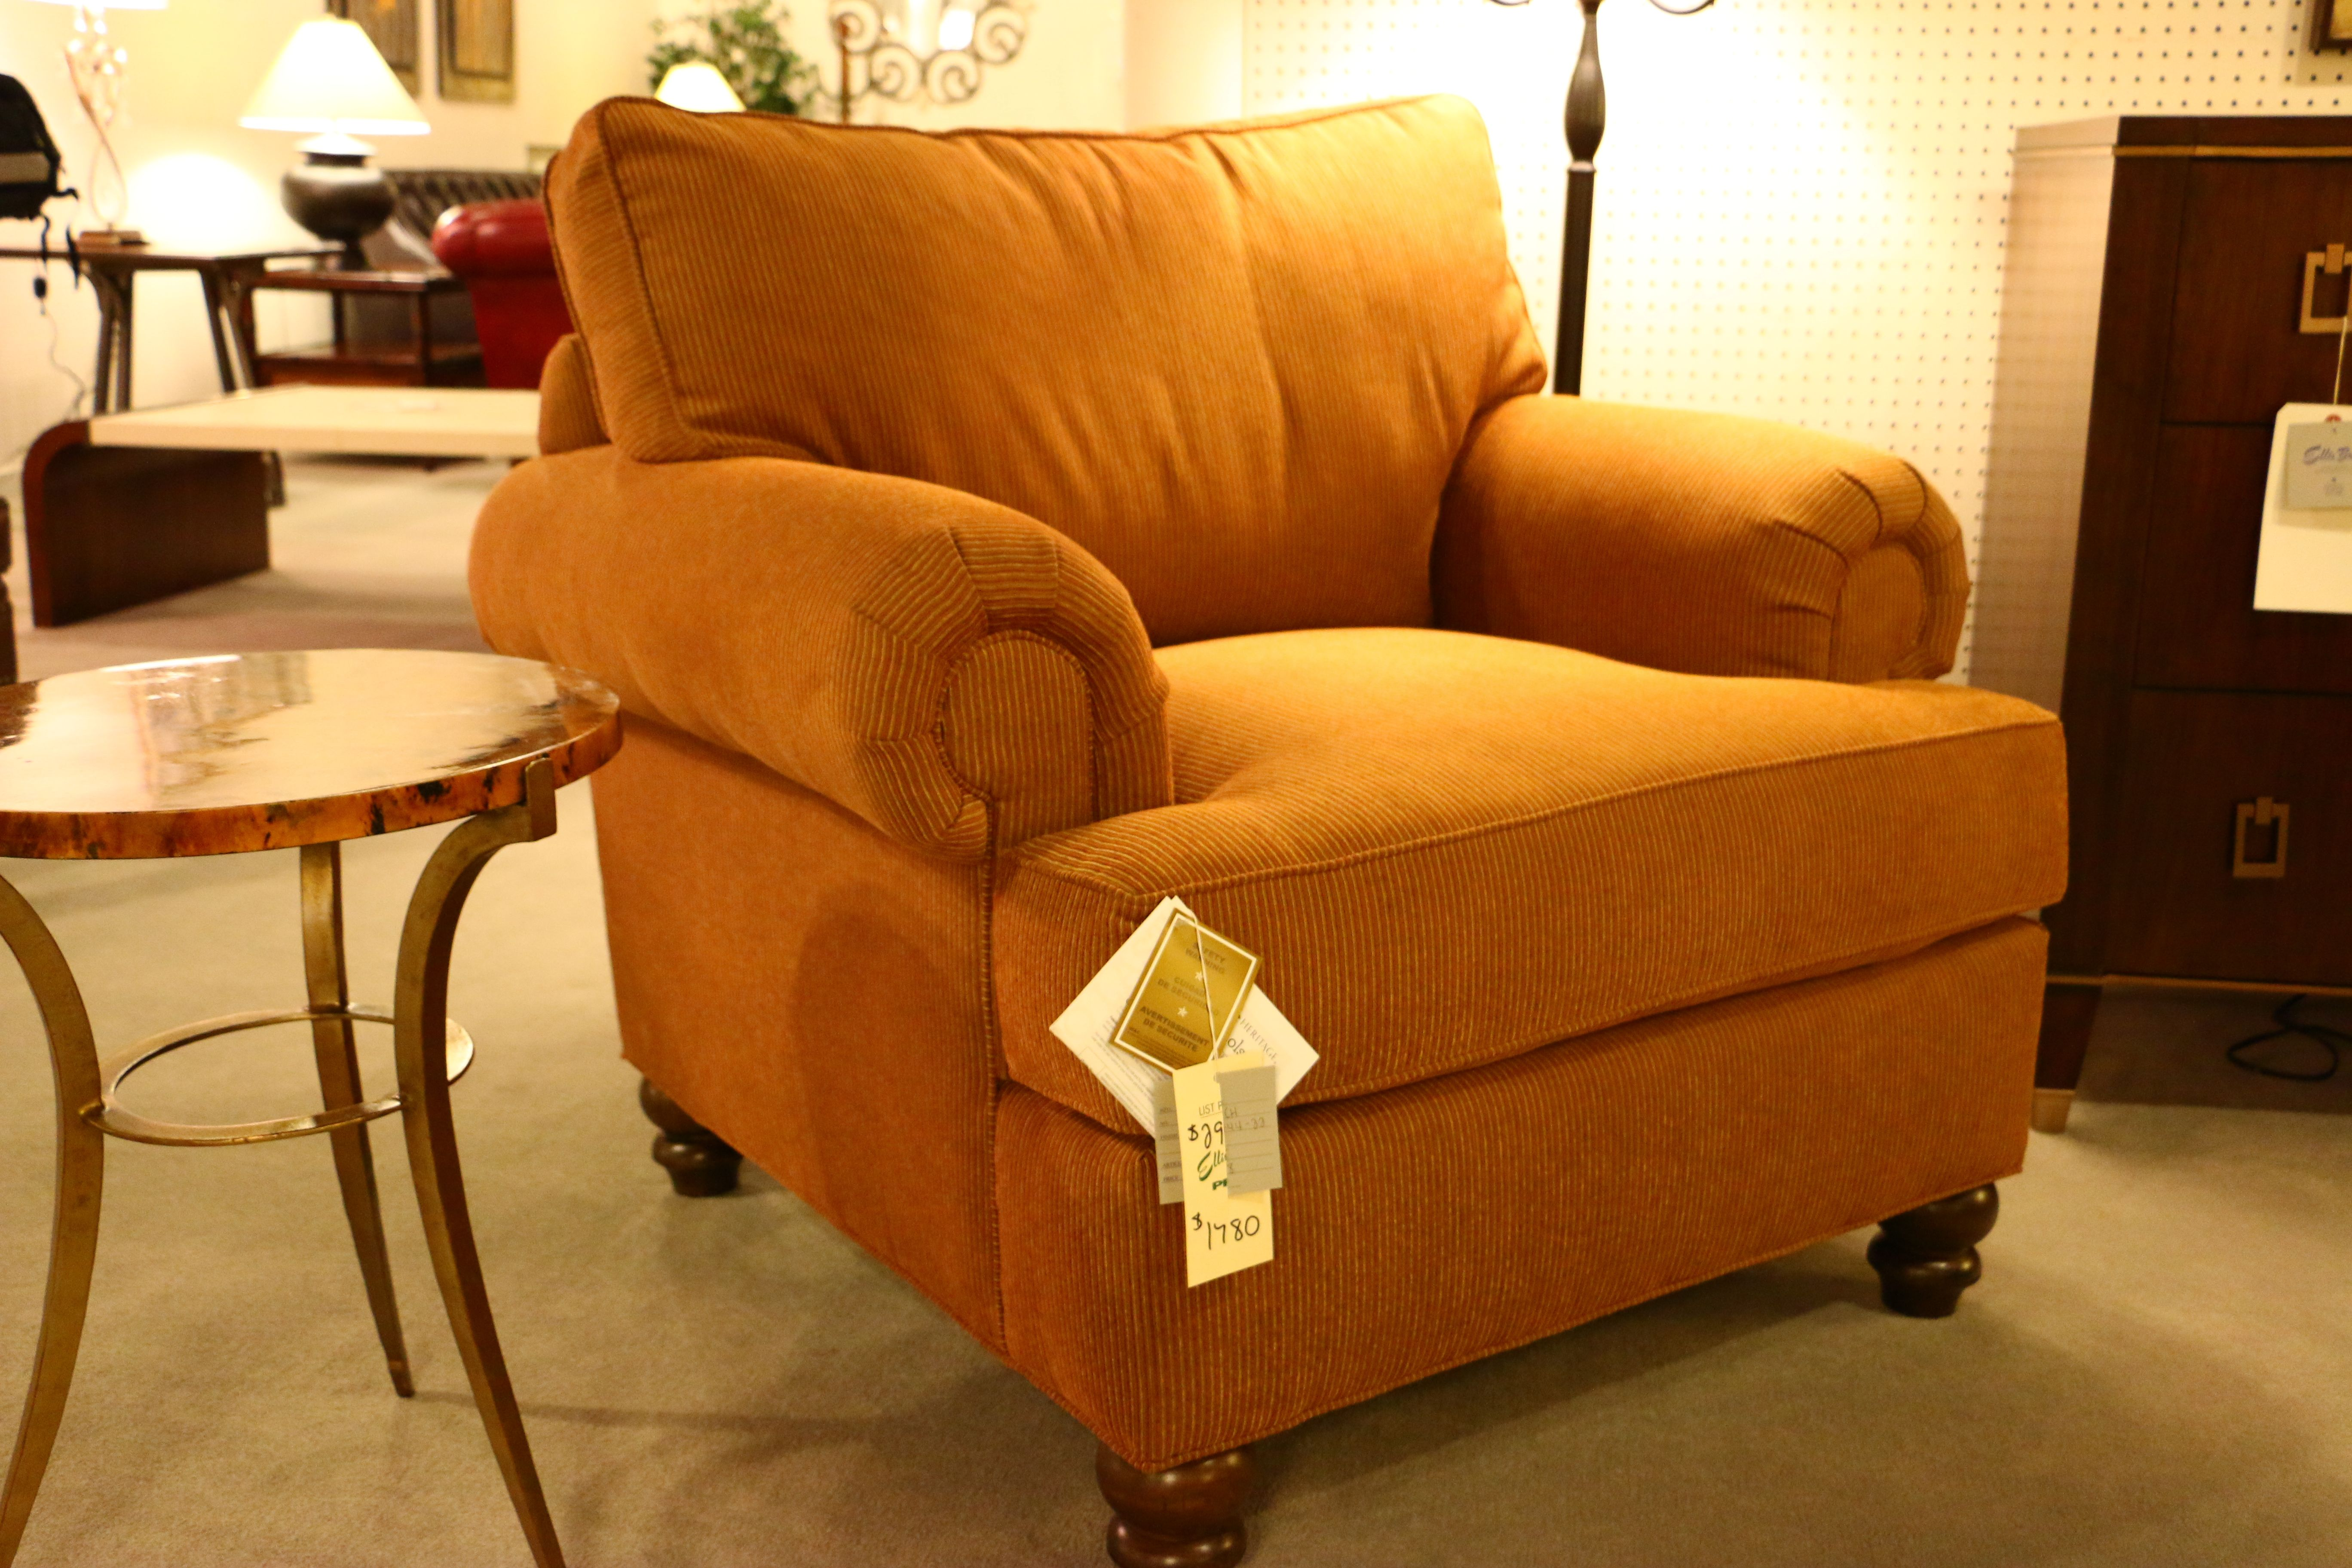 Complete your living room with this great lounge chair for ...